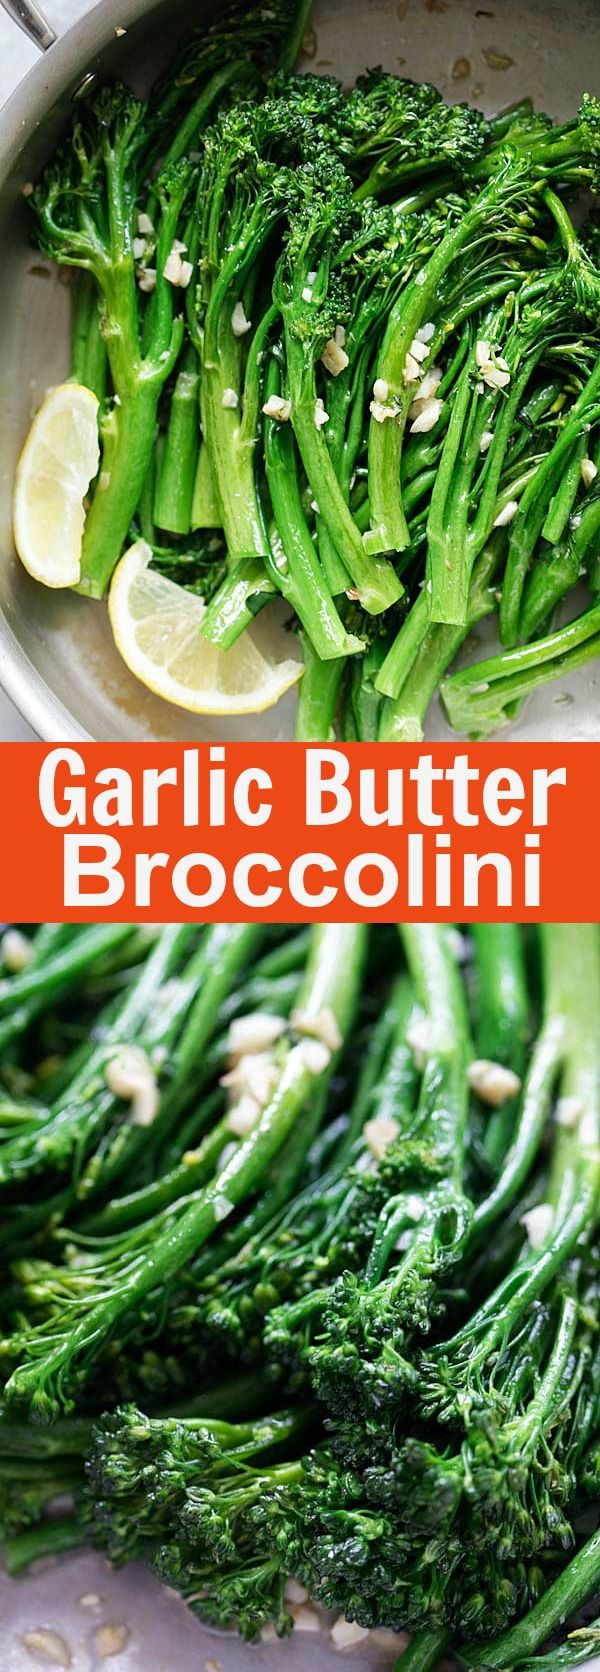 Garlic Butter Sauteed Broccolini – the easiest & healthiest broccolini recipe ever, takes only 10 mins to make. Quick, fresh, and delicious   rasamalaysia.com